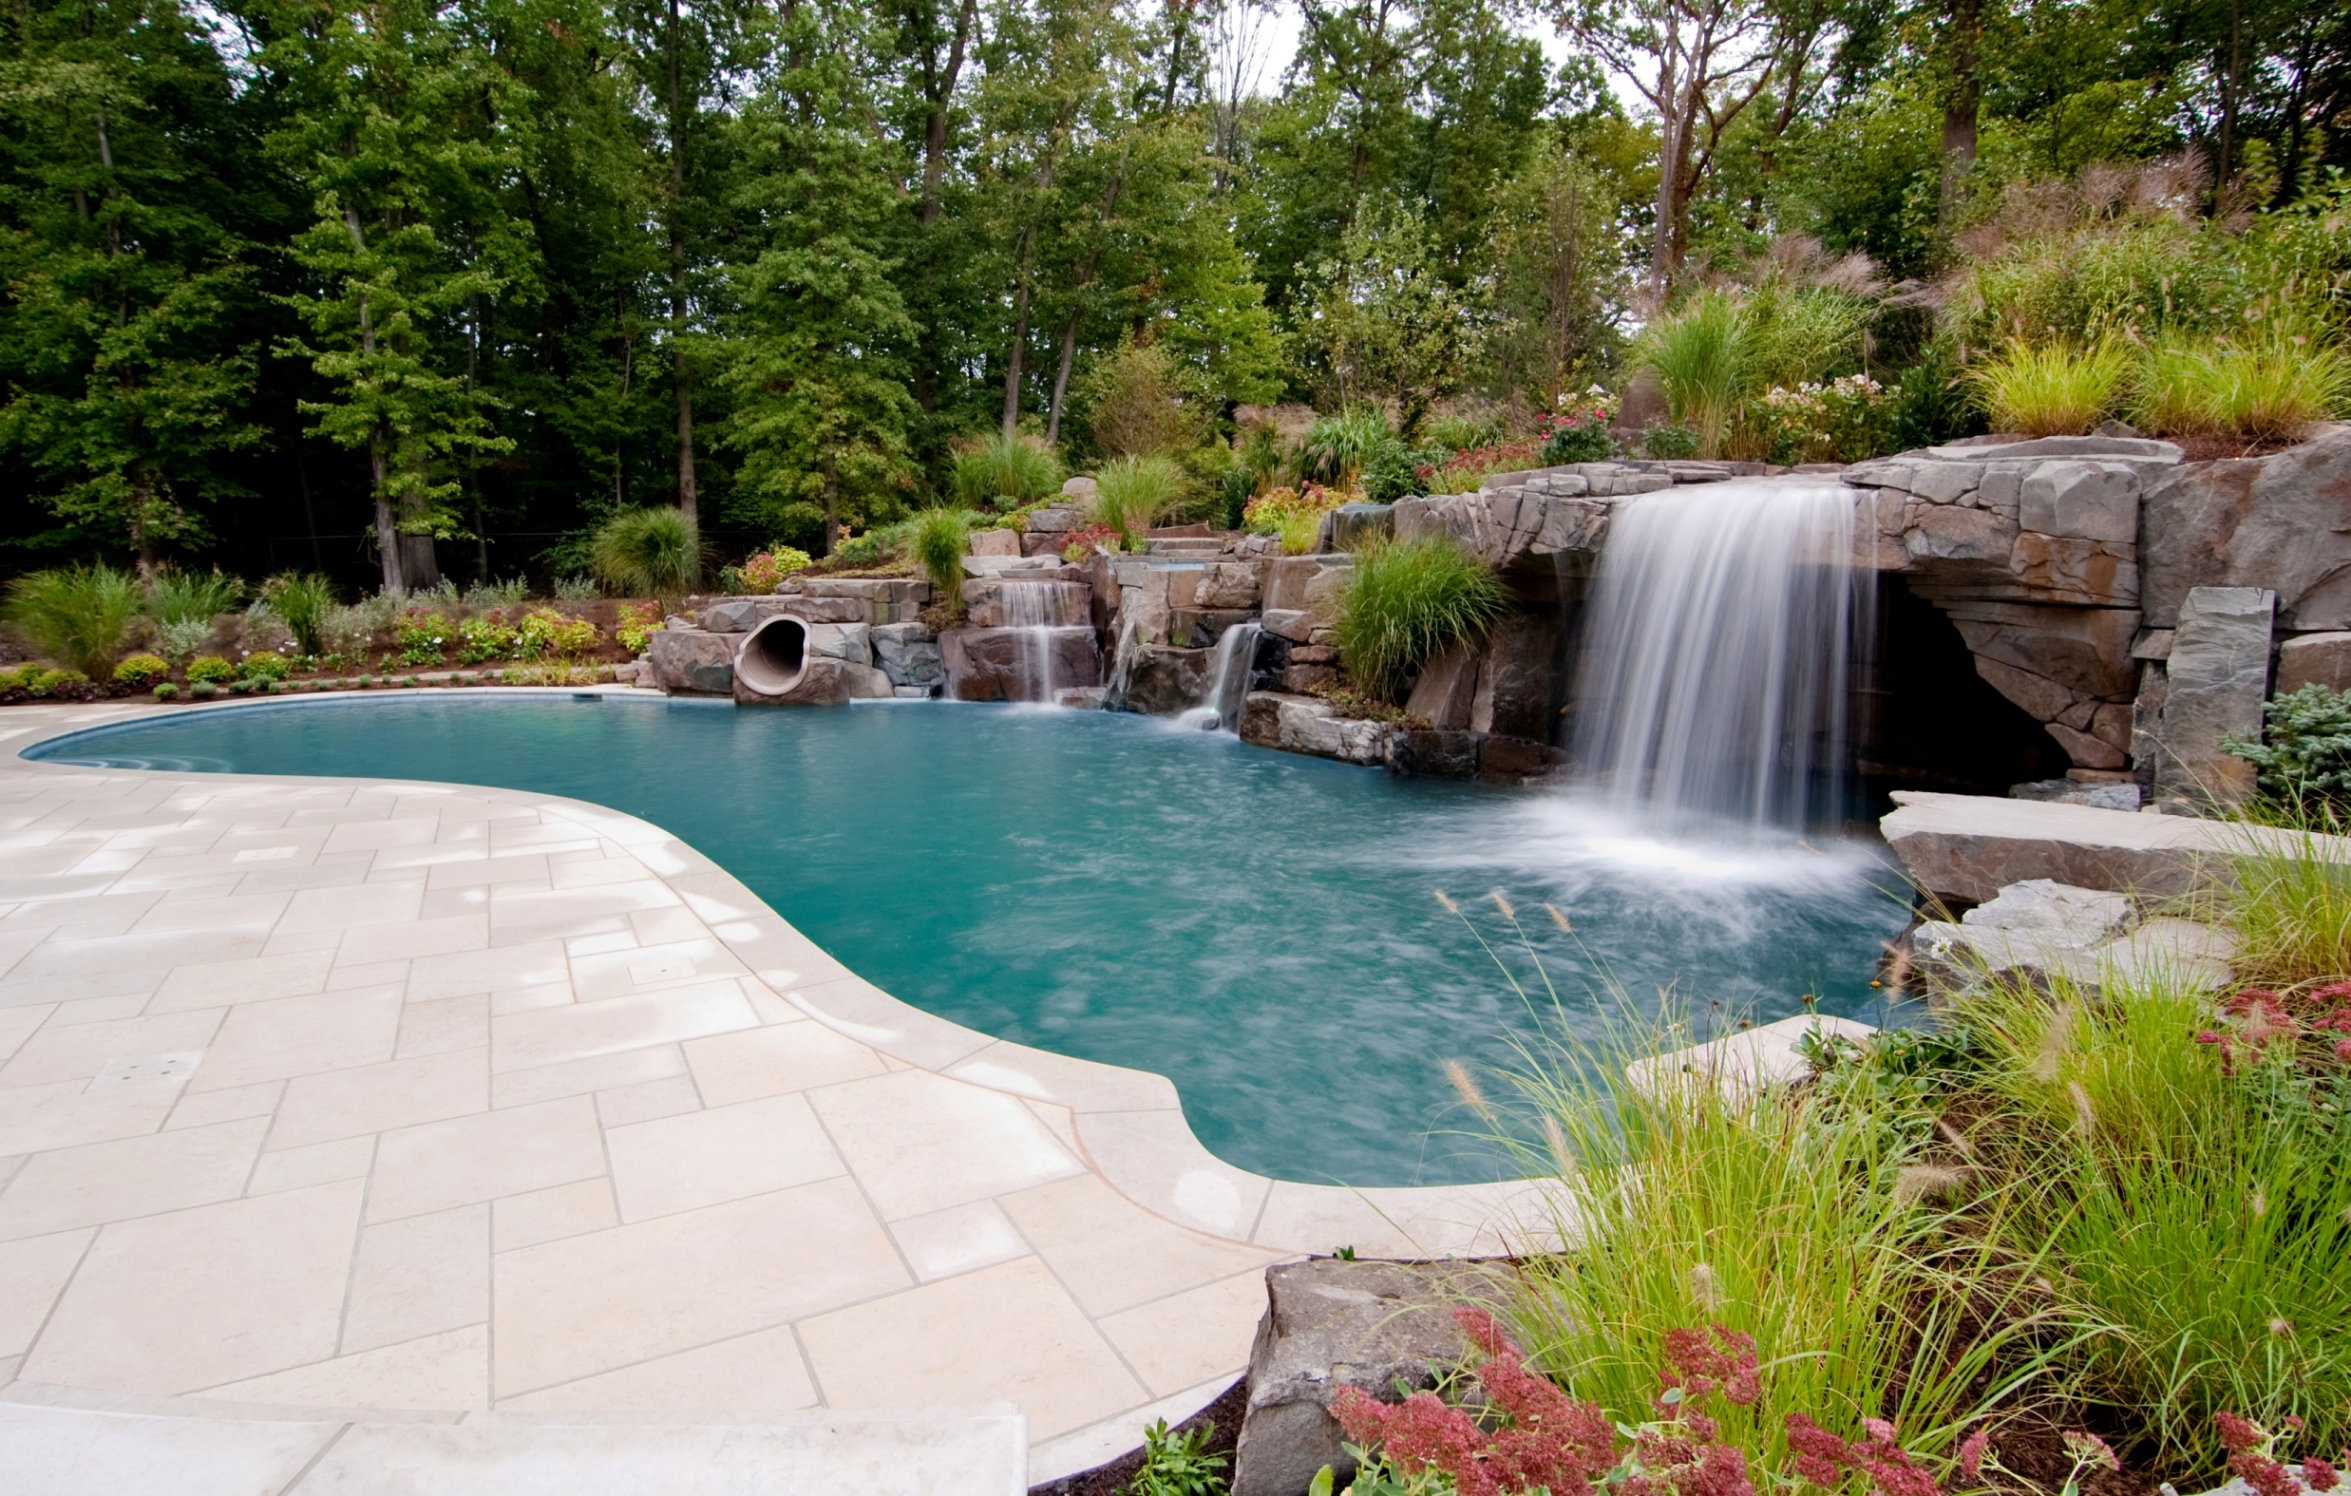 New jersey inground pool company earns international award for Inground swimming pool designs